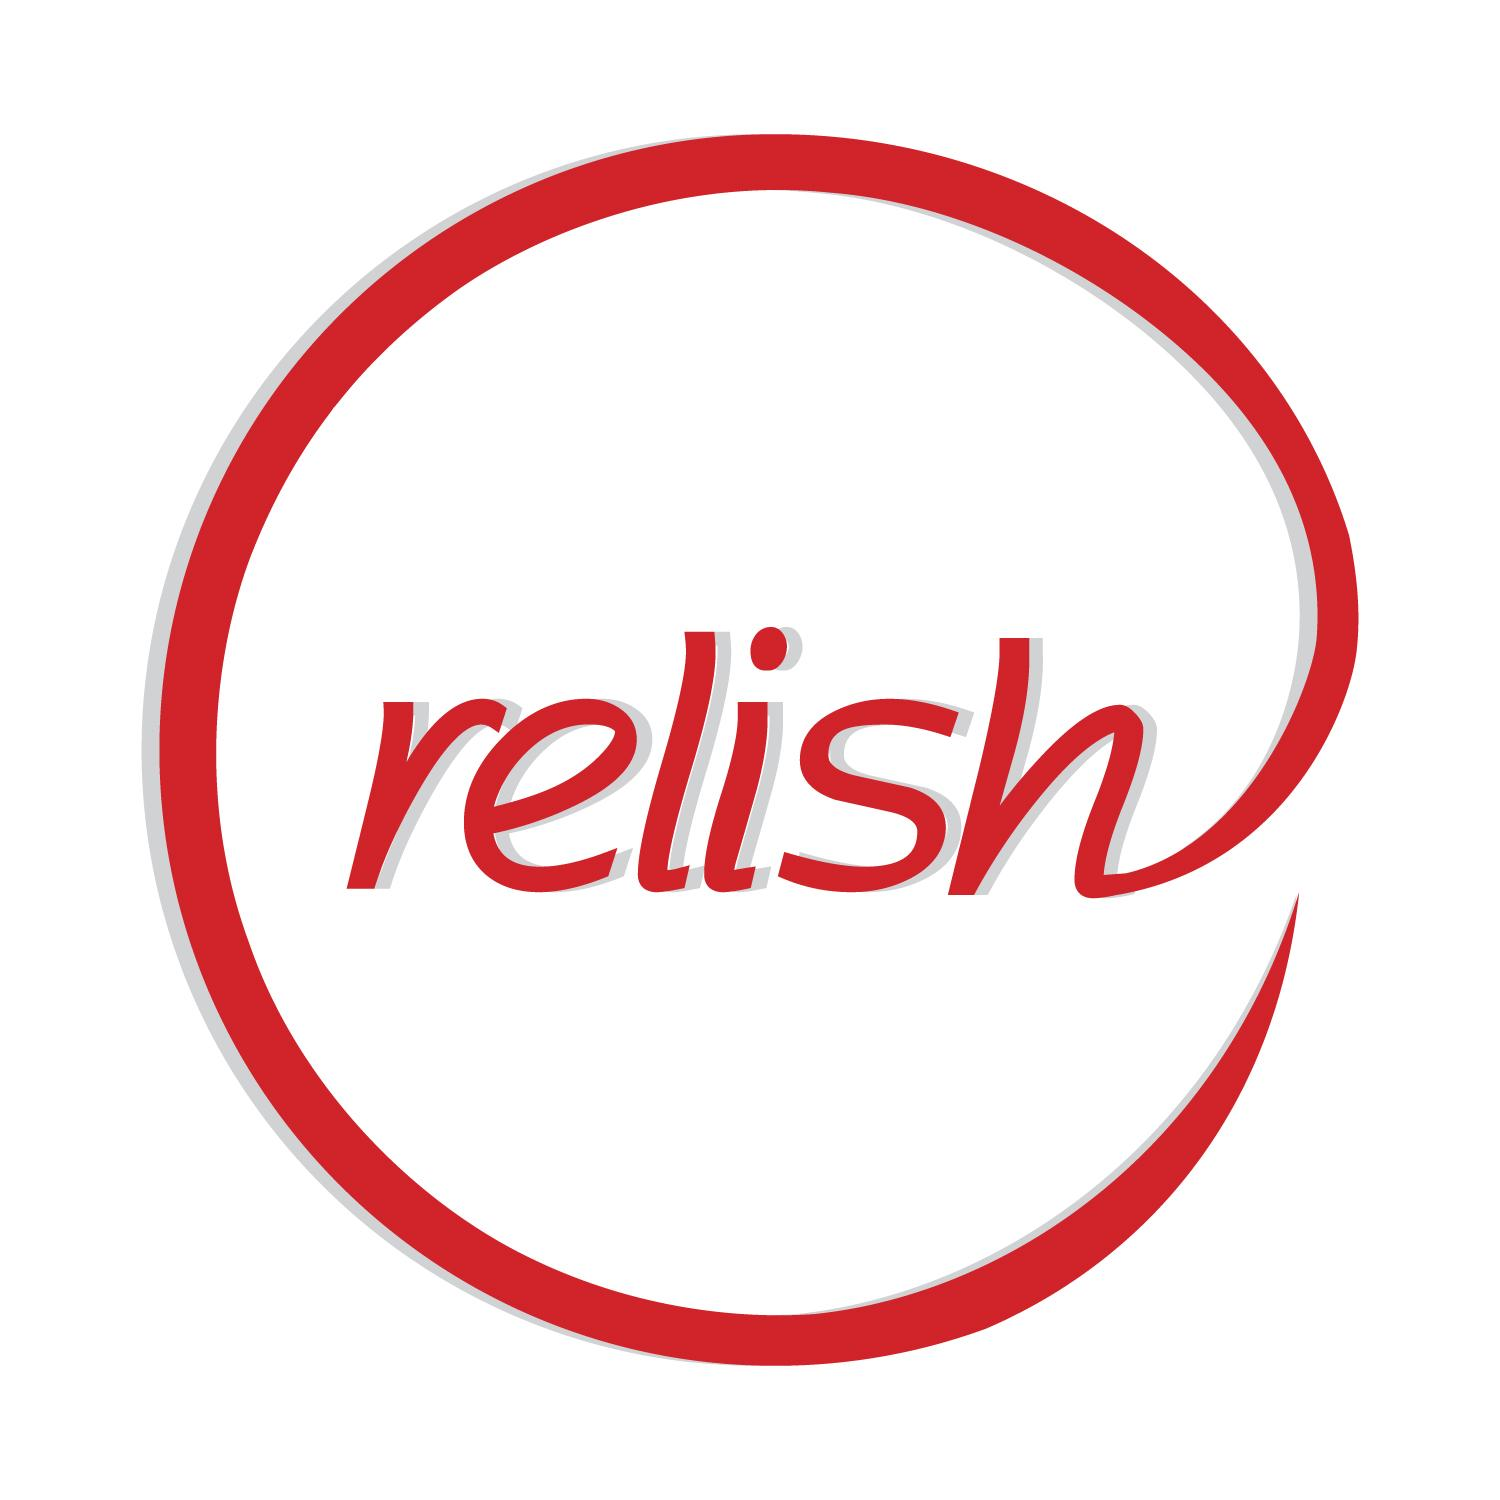 New York City Singles - Relish Event - NY Speed Dating